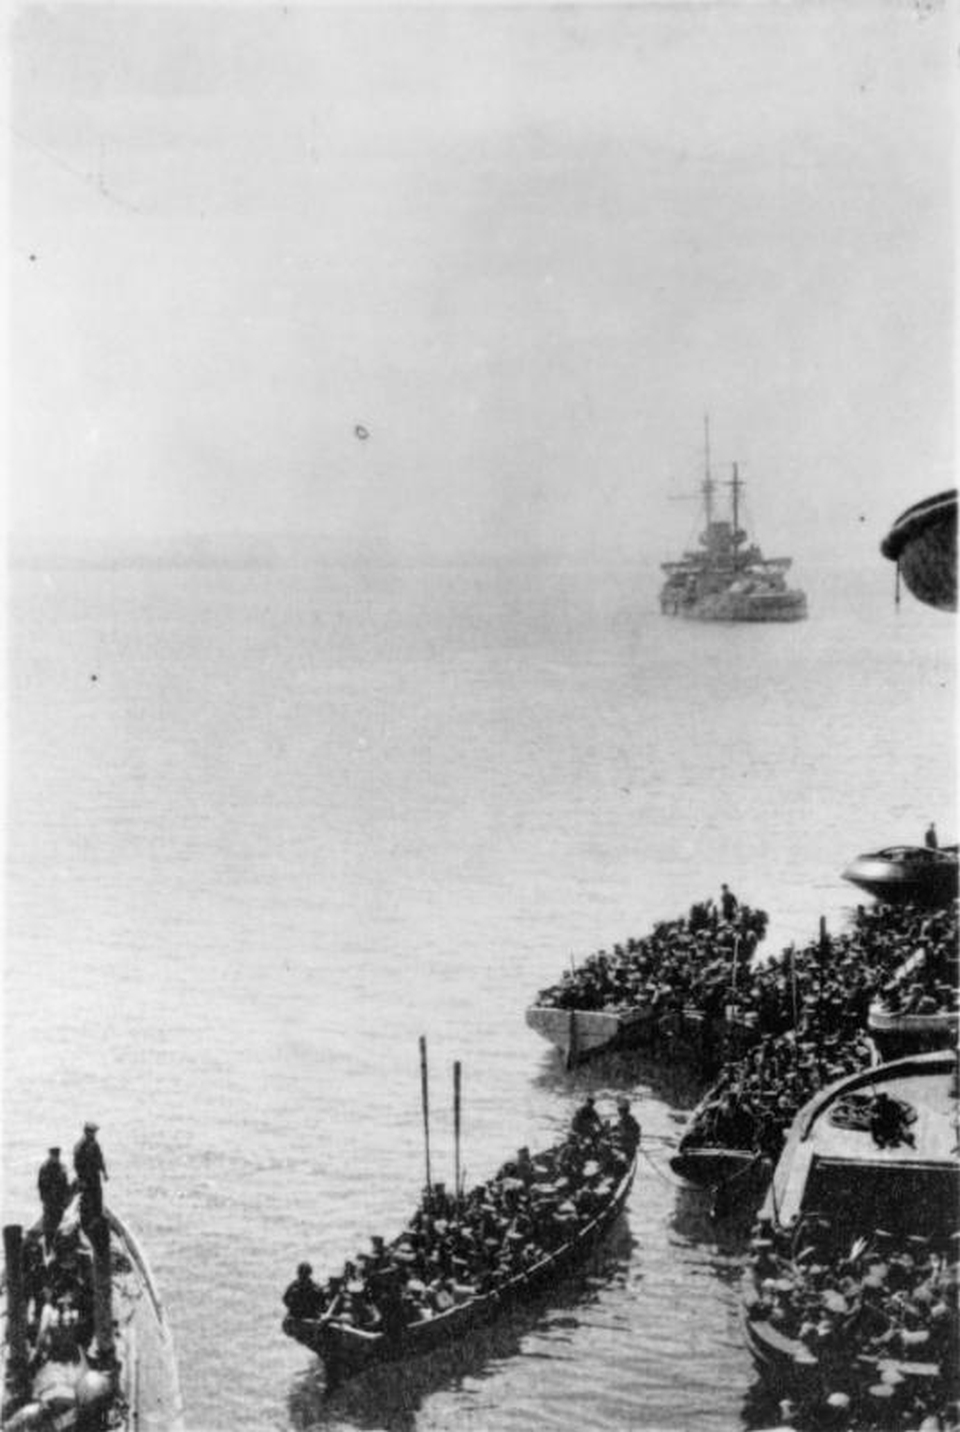 learnz iers land at gallipoli in 1915 image public